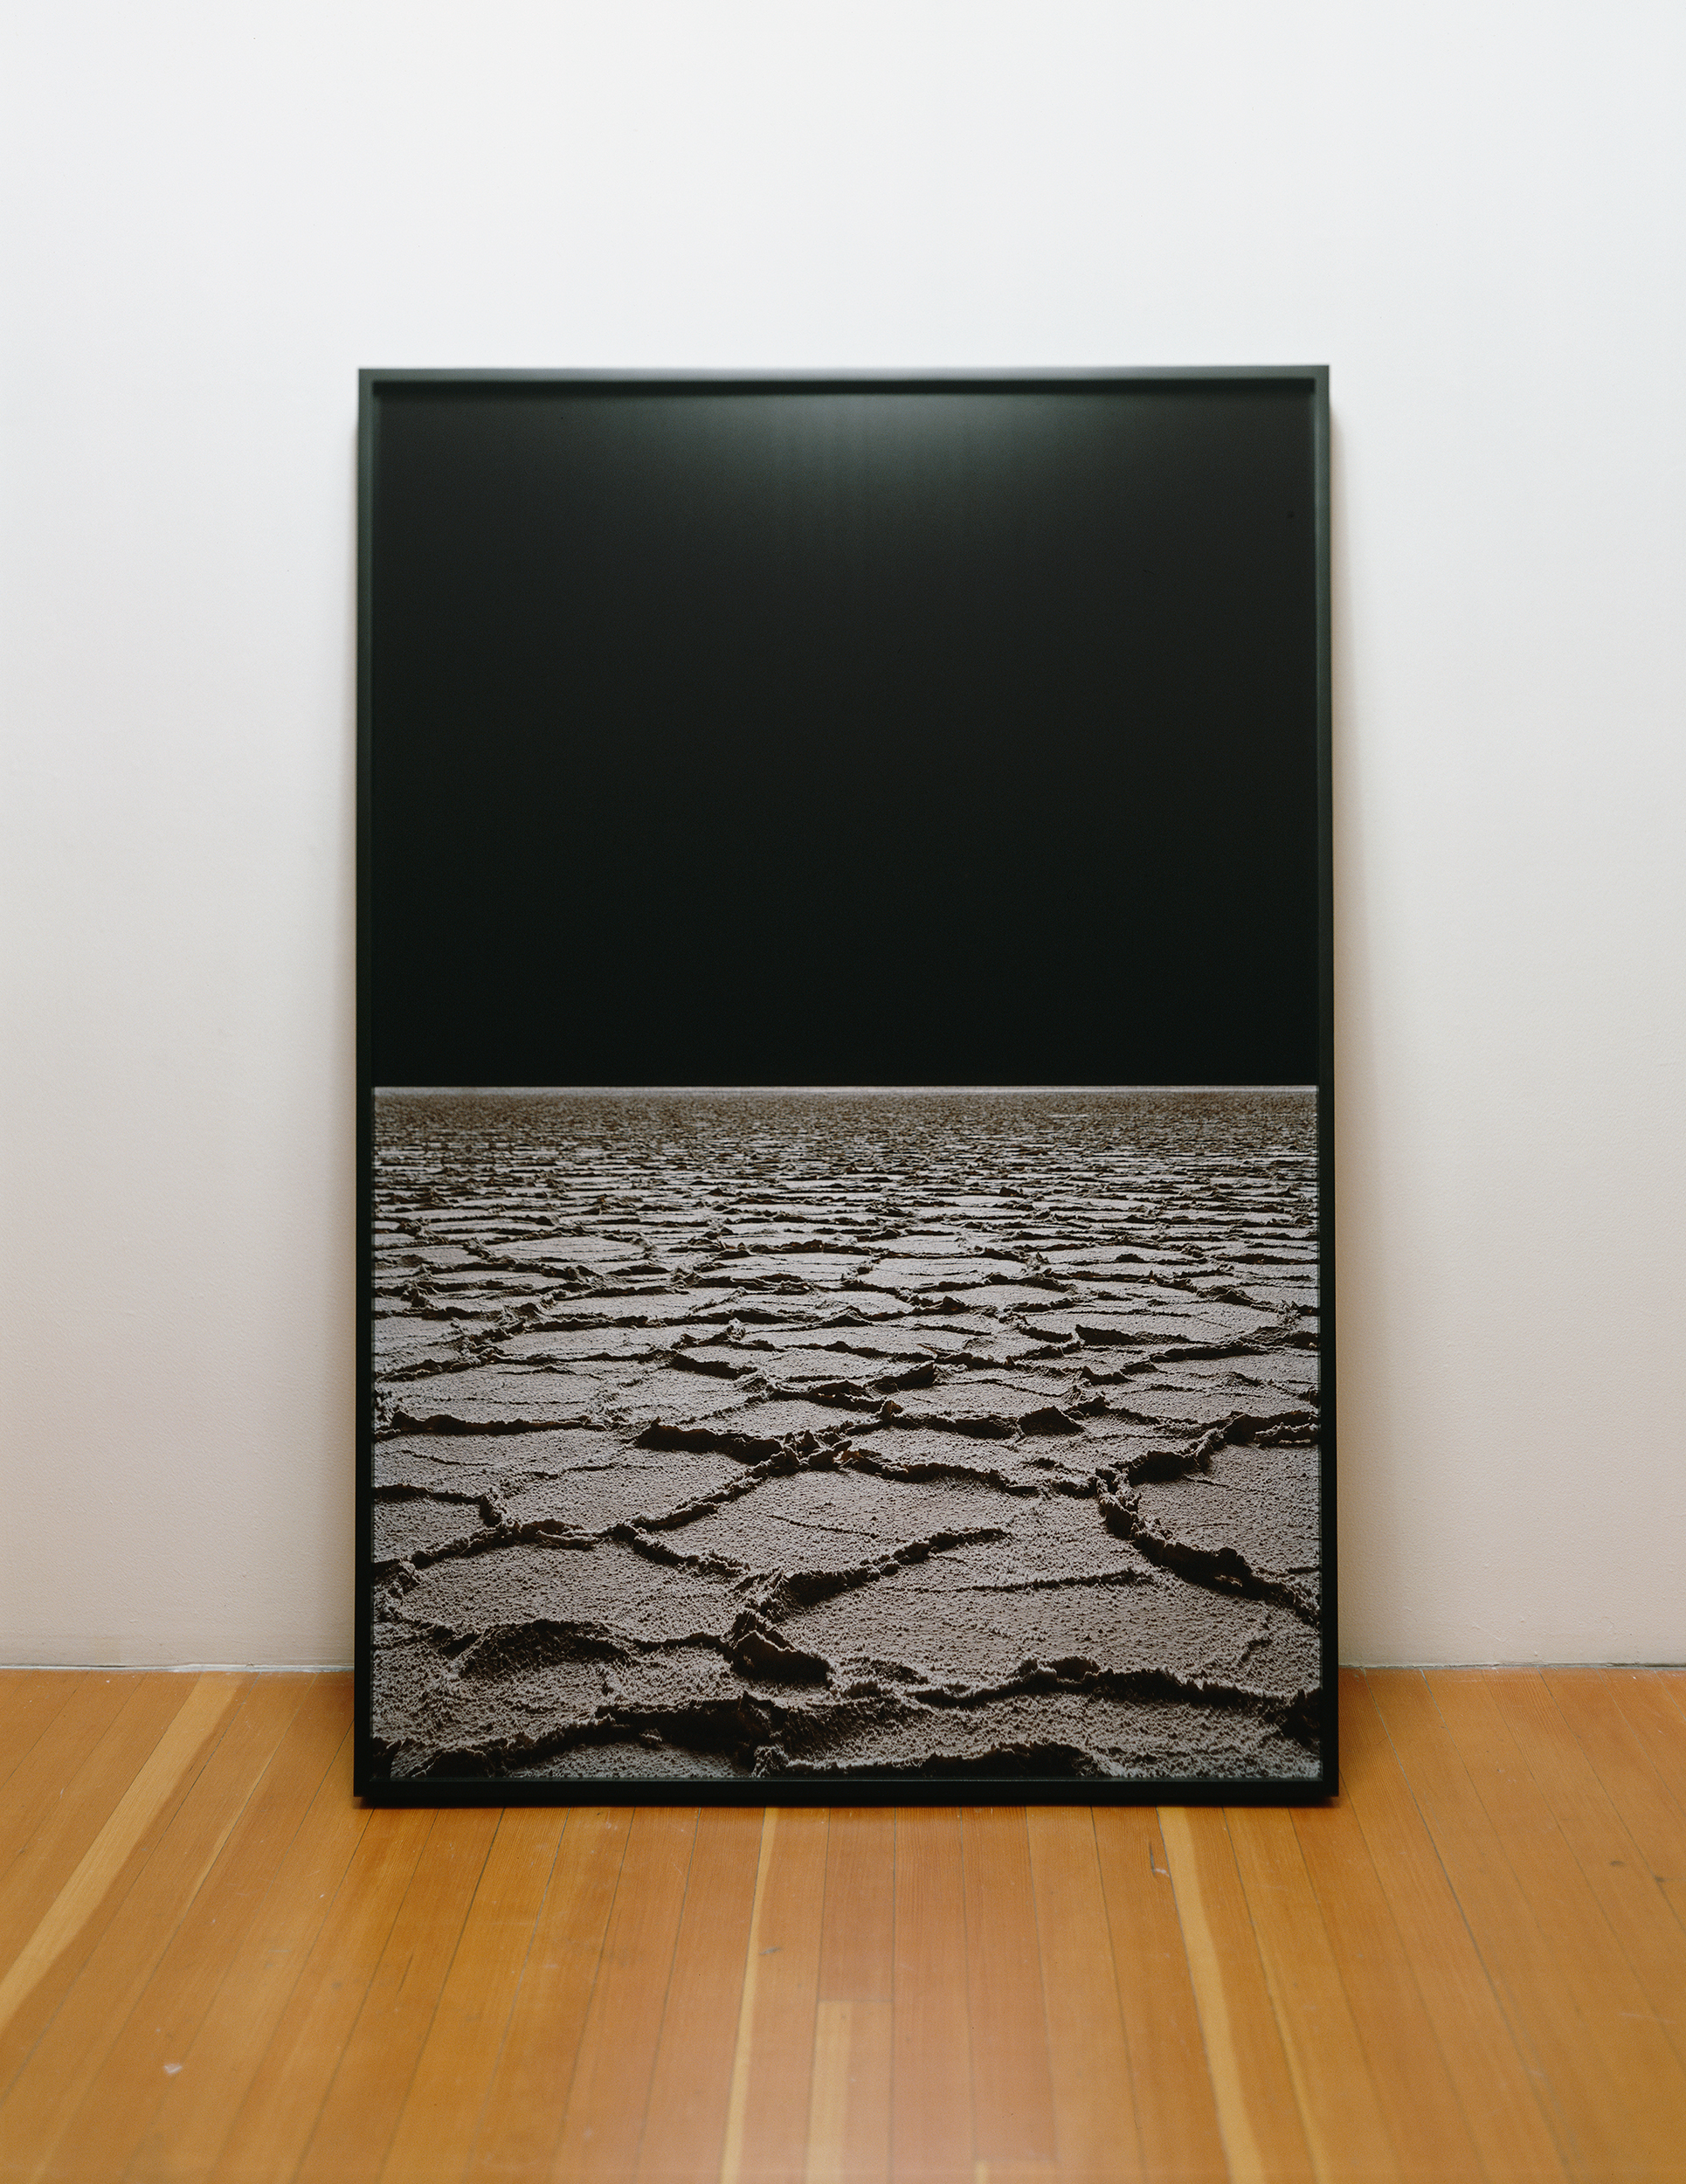 Black Mountain Detatchment: Two Nights, From Waxing to Fully Stated 2008 chromogenic print on Dibond, with painted poplar trapezoidal frame (fa ç ade view)